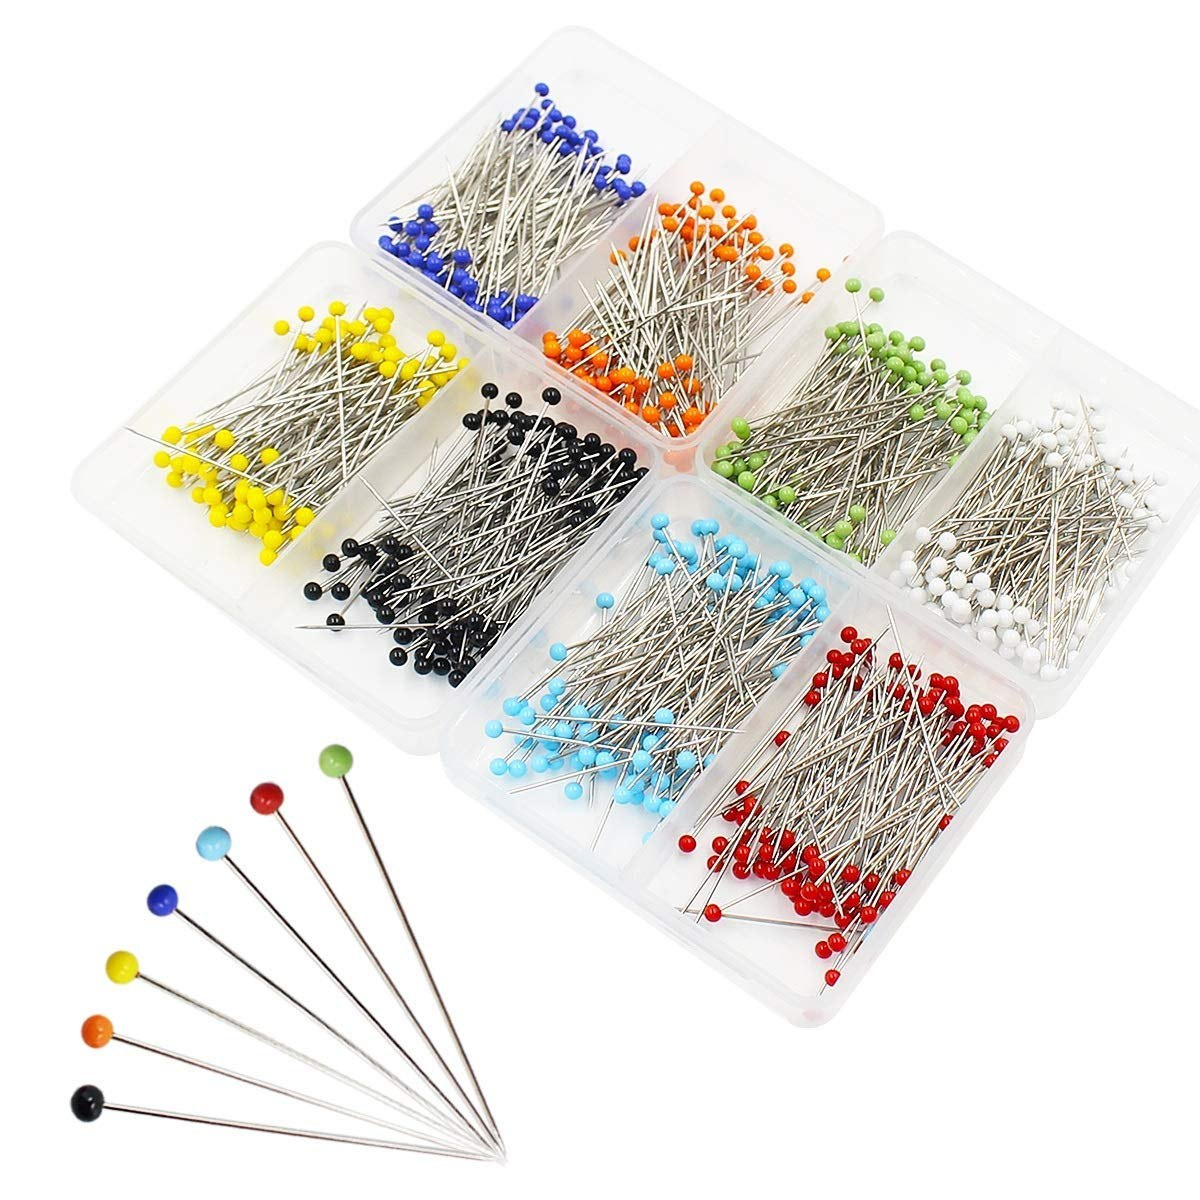 Pin Cushion and Glass Head Quilting Pins